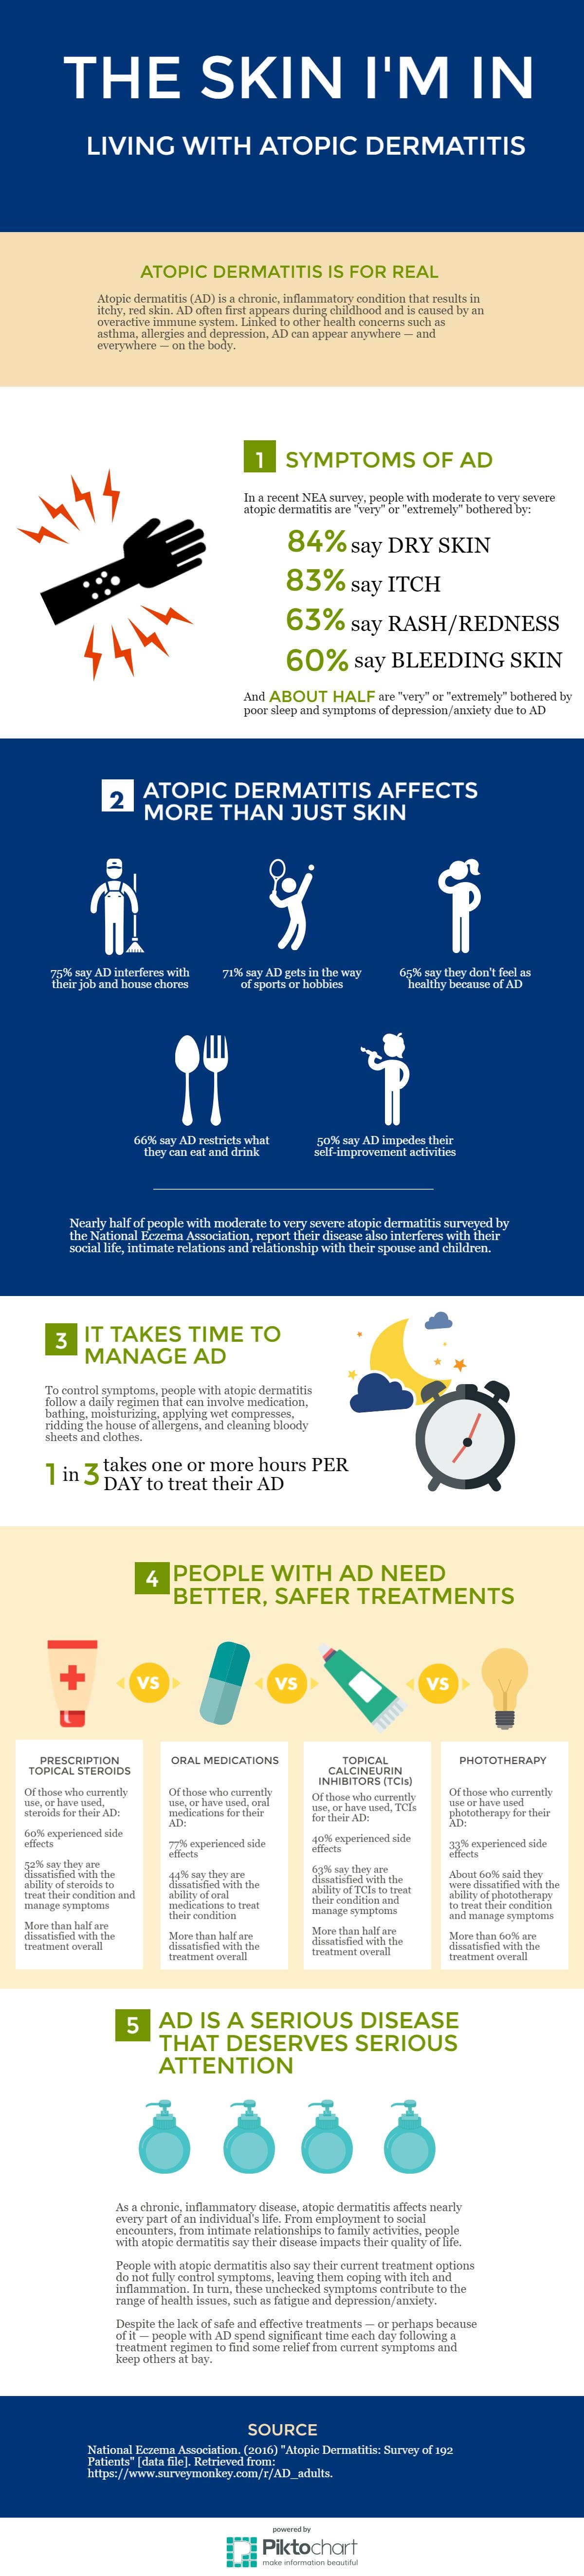 nea-ad-survey-infographic-updated